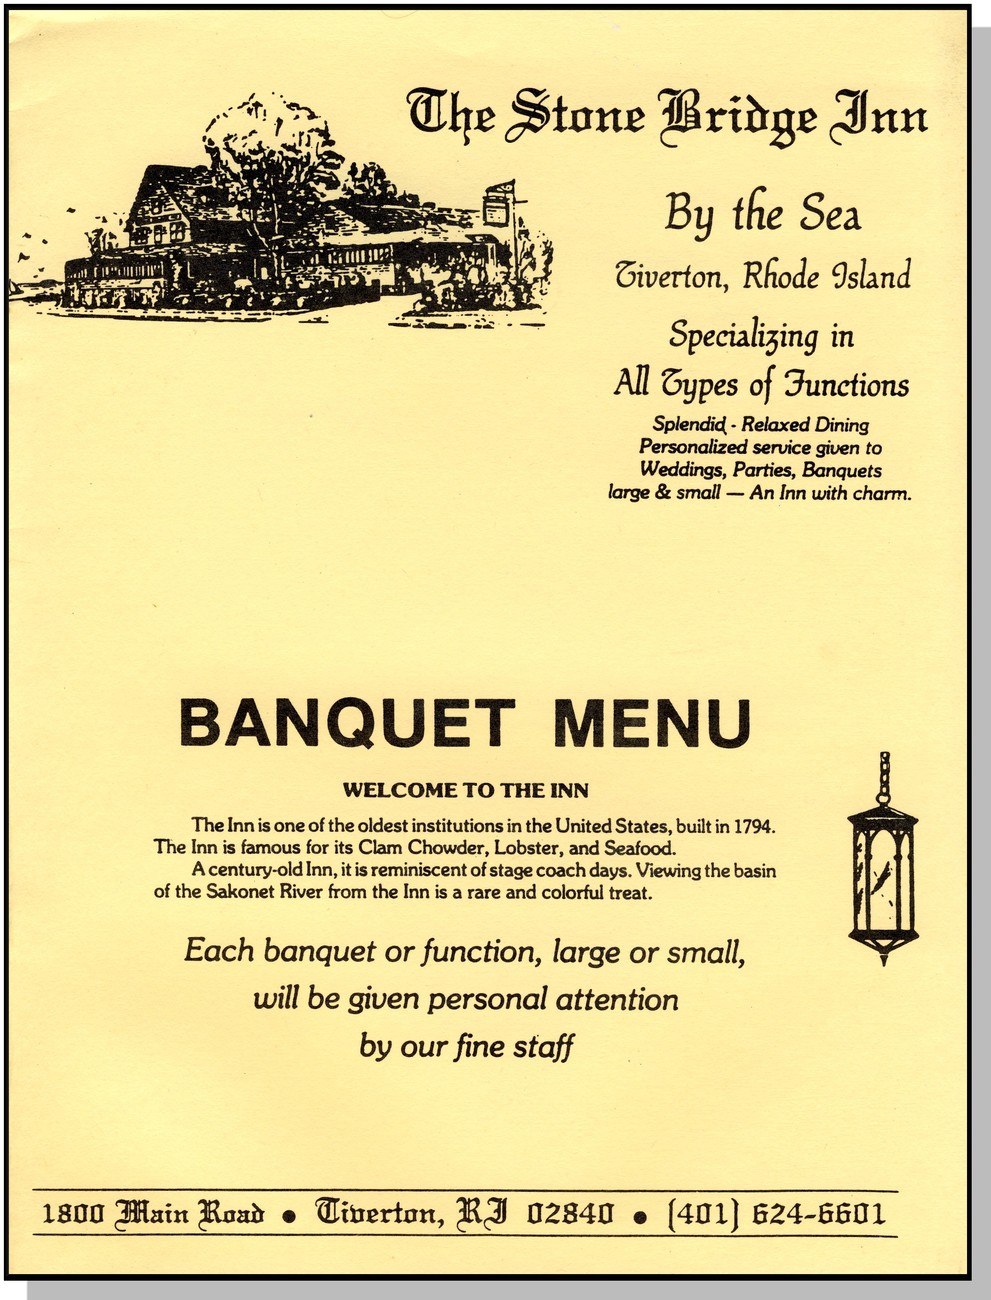 Stone Bridge Inn Banquet Menu, Tiverton, Rhode Island/RI